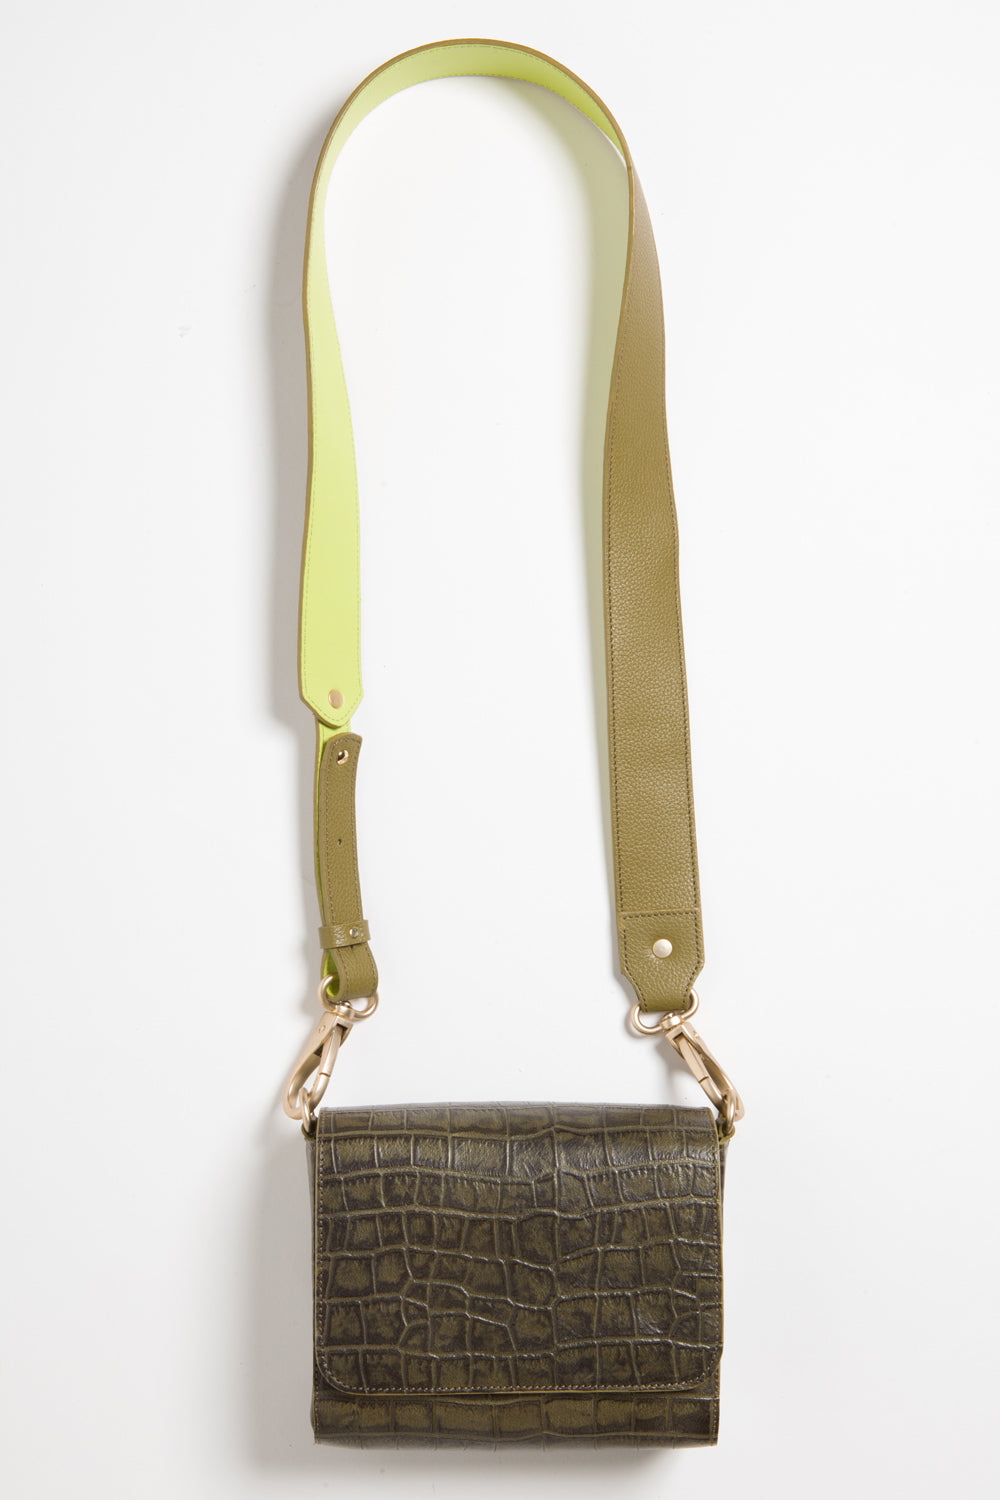 'Gema' Small Shoulder Bag in Green Moss, Croc-Emboss Leather | Mel Boteri | Long Strap View